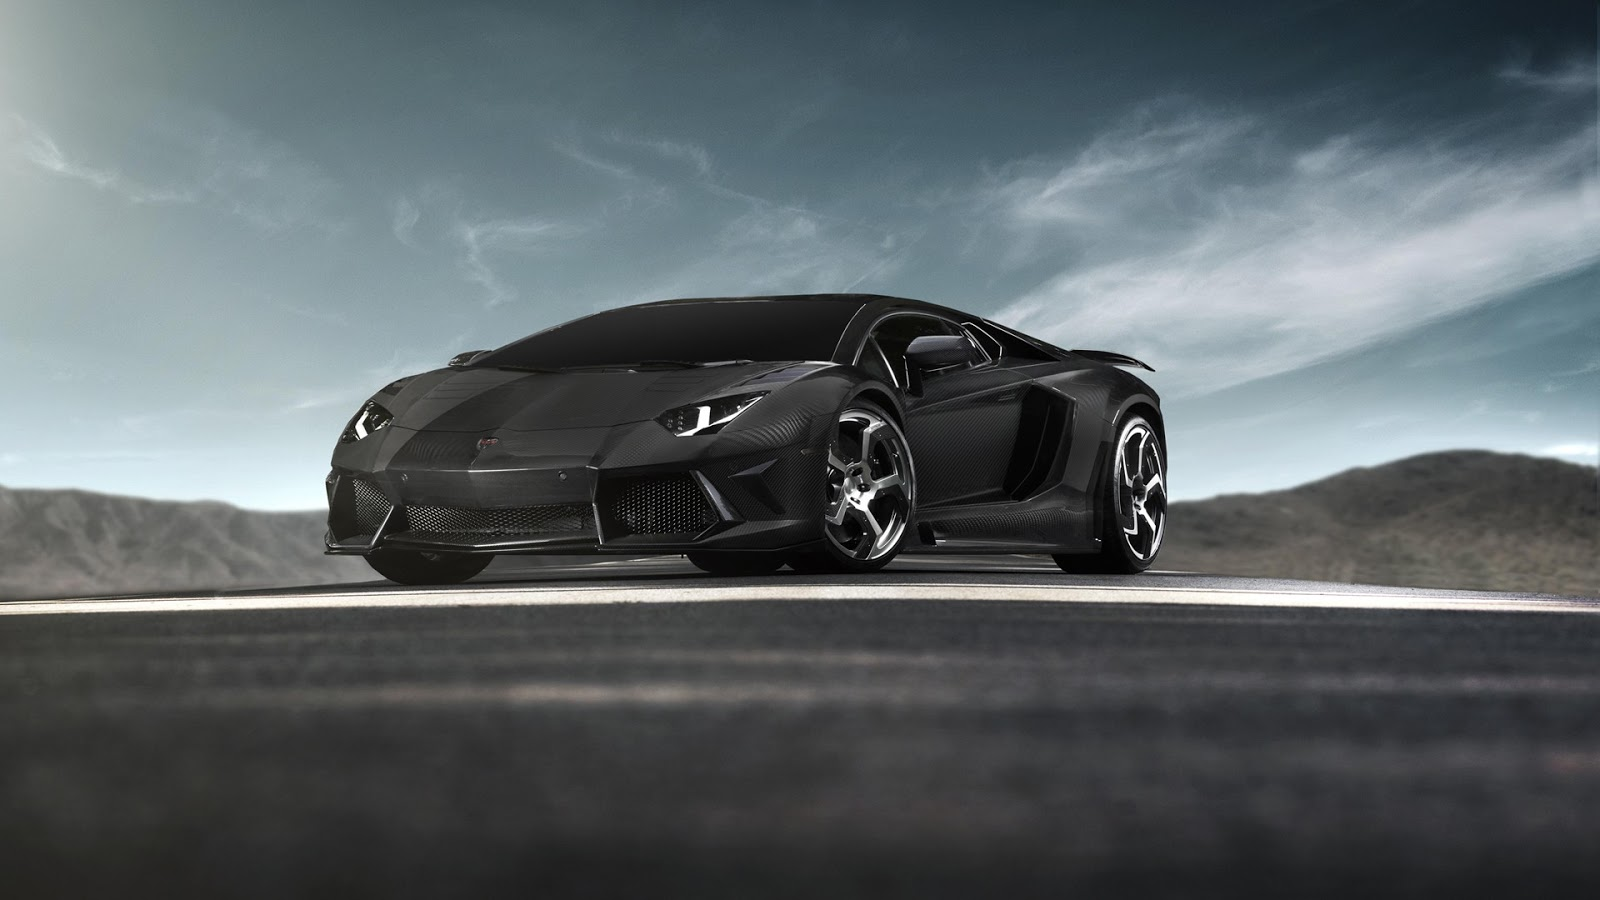 new cool cars 2013: new sports and super cars wallpapers